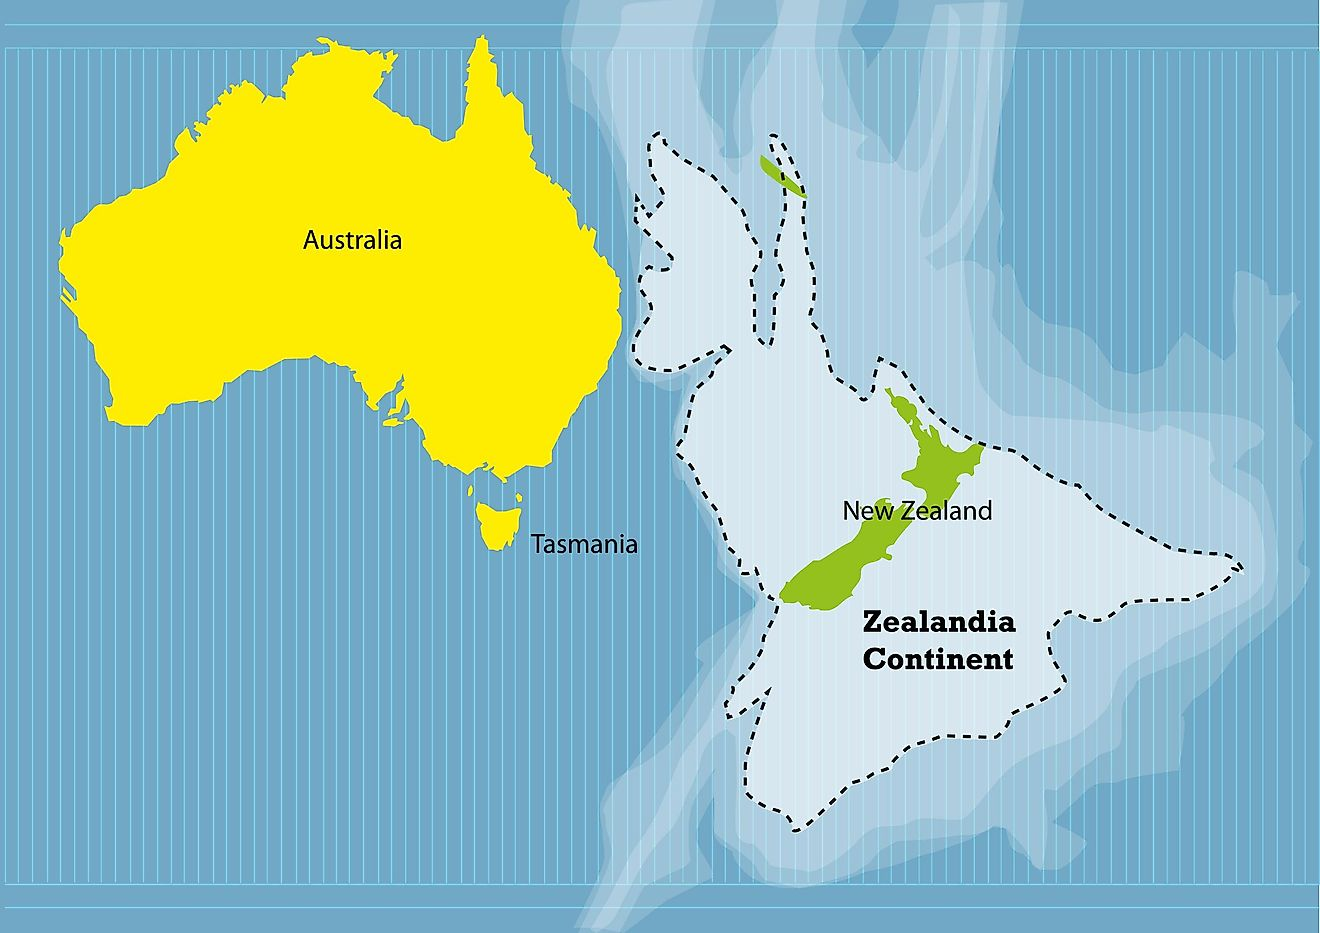 A map showing the submerged continent of Zealandia.